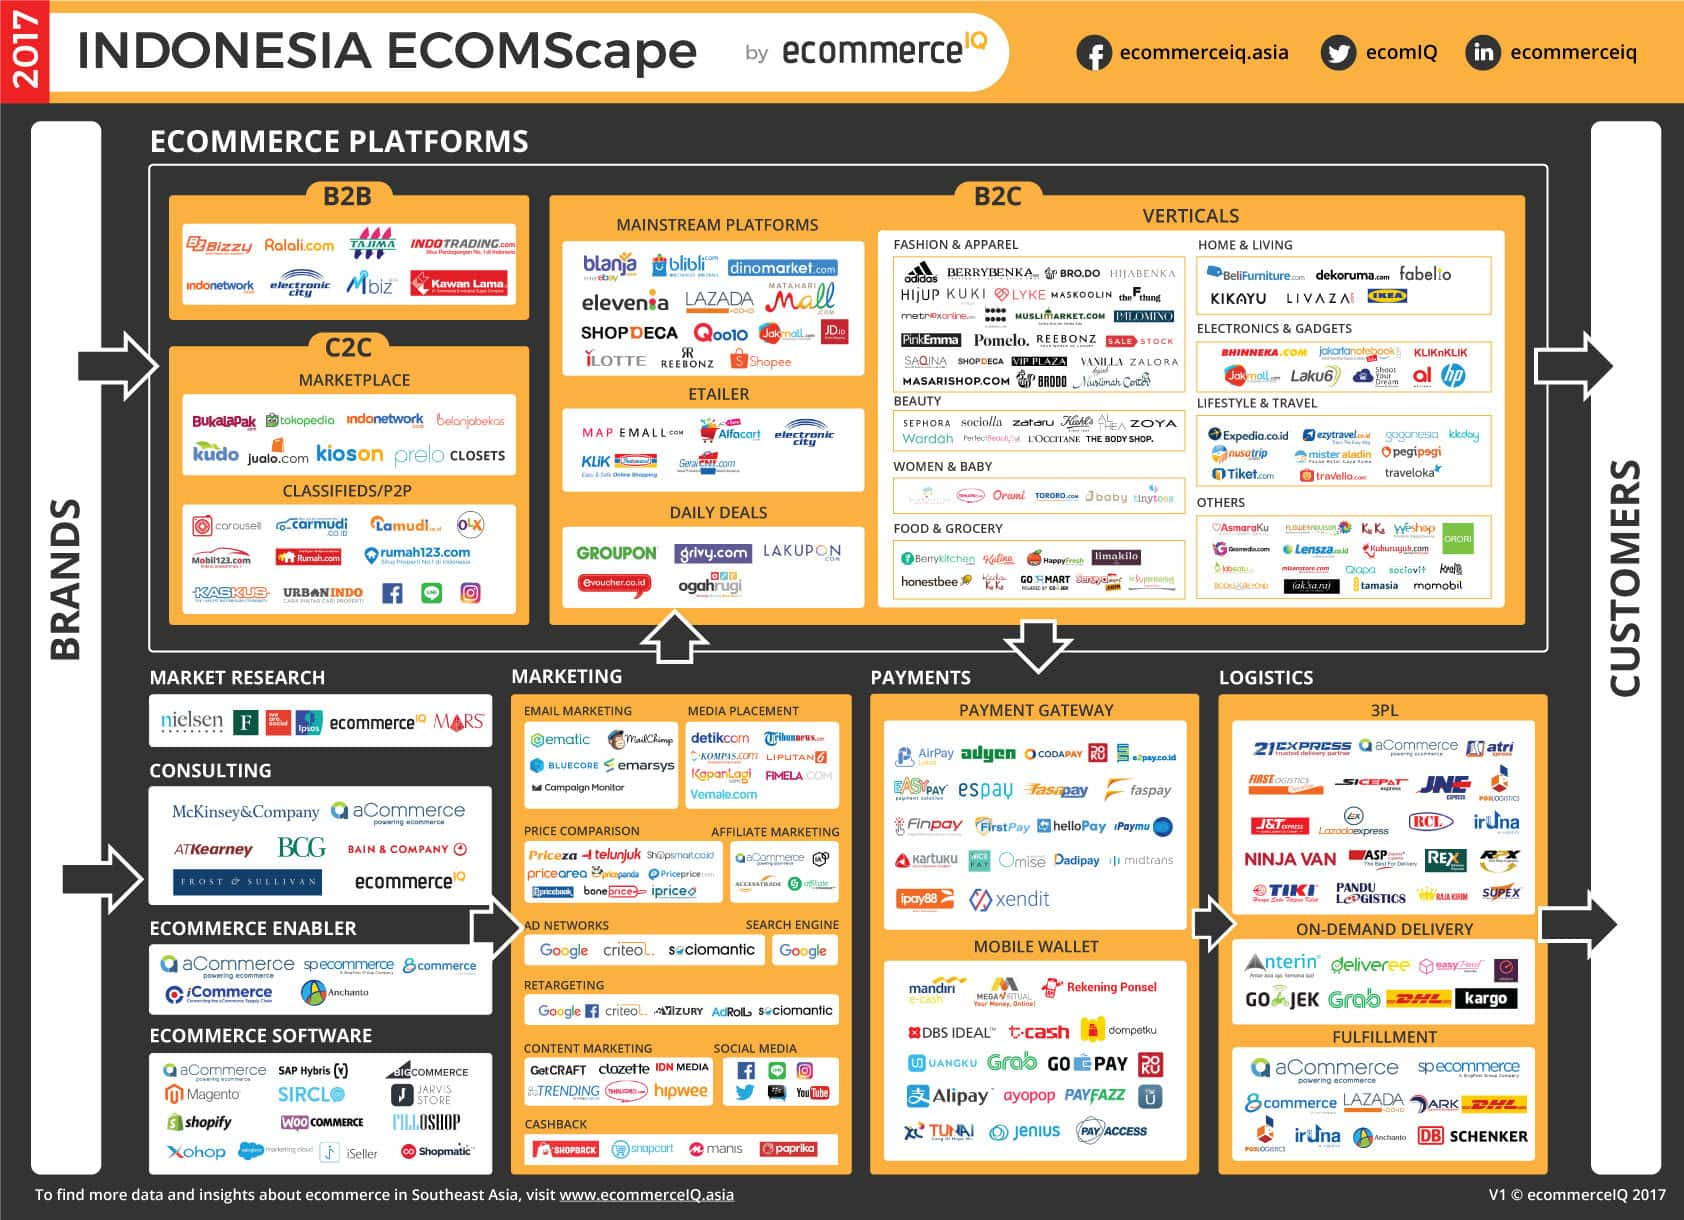 Top Ecommerce Sites and Apps in Indonesia | ecommerceIQ